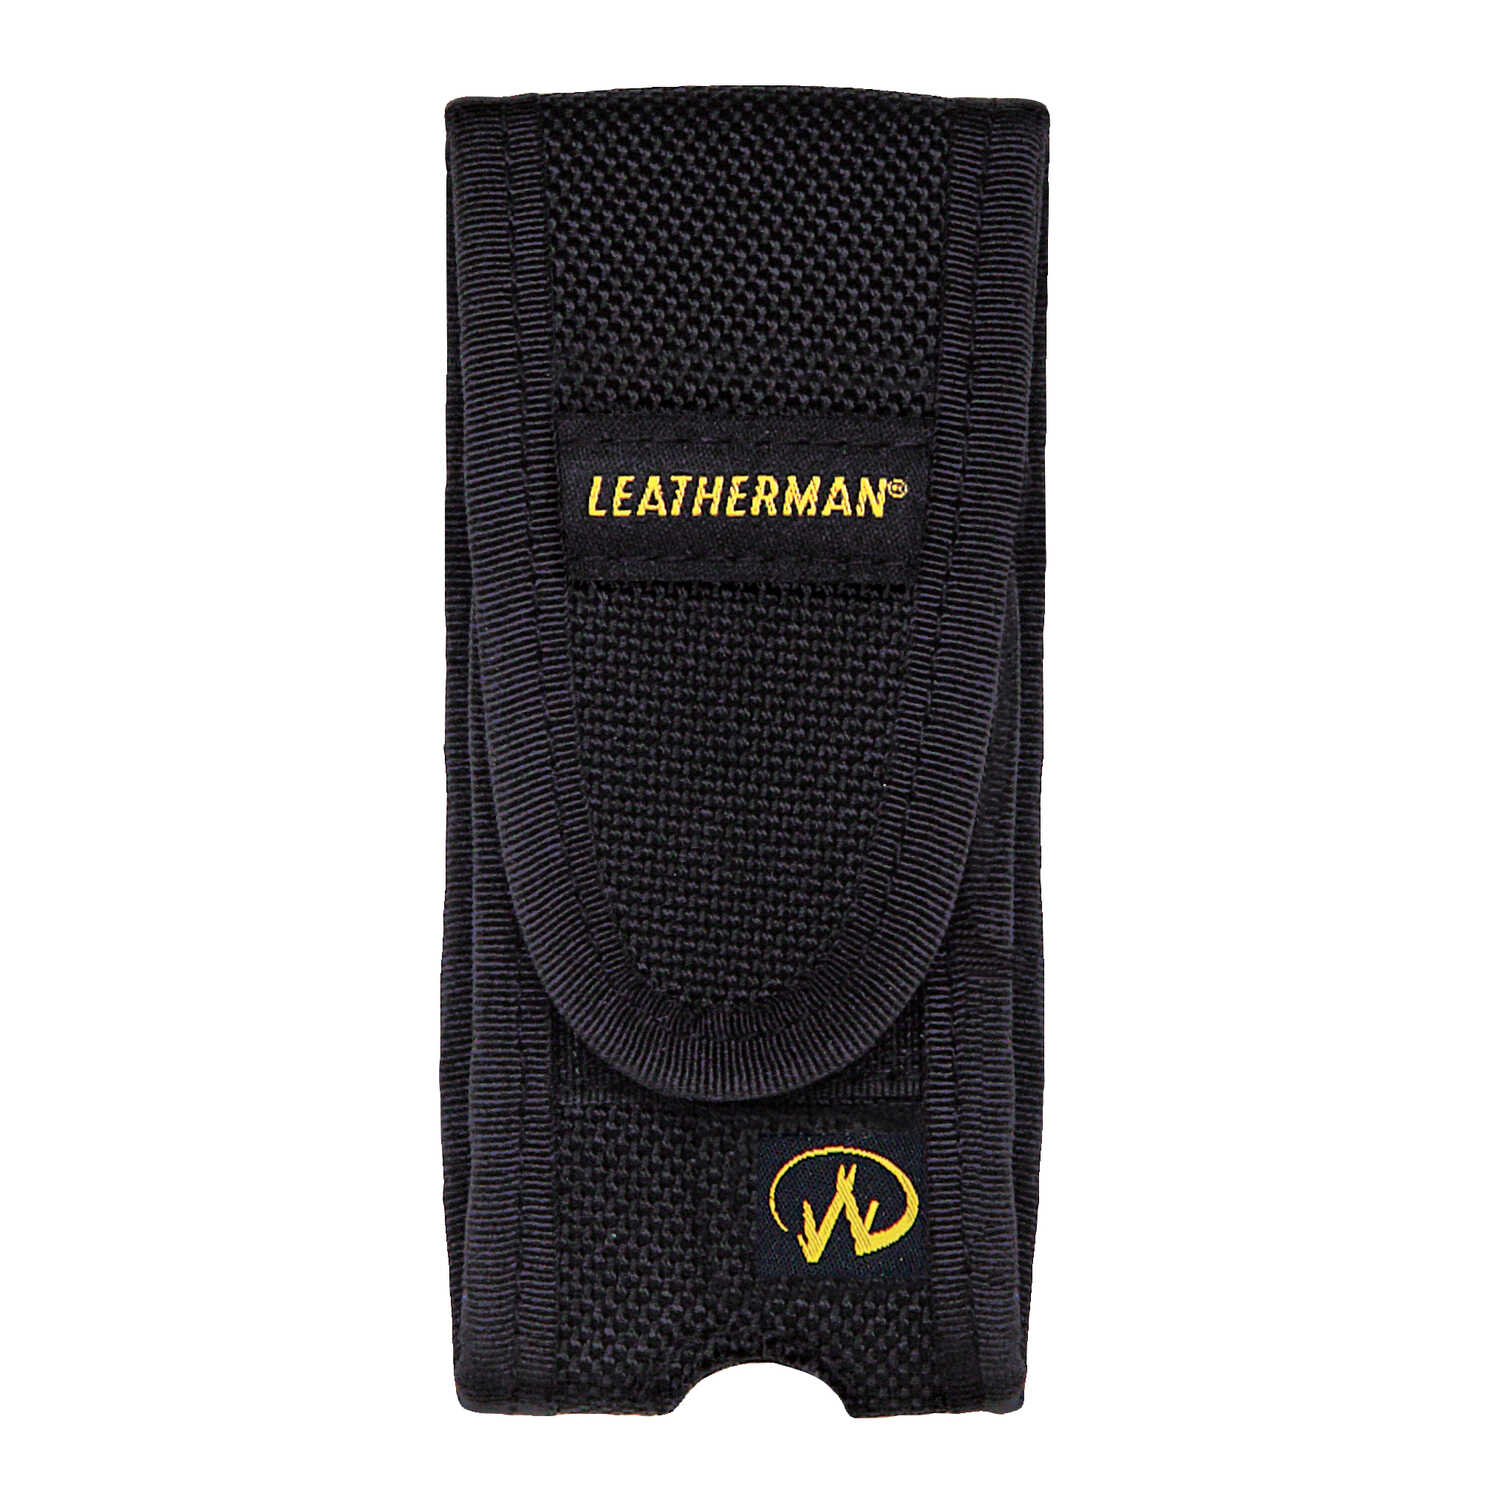 Leatherman  1  Nylon  Belt Sheath  8 in. L x 4-1/2 in. H Black